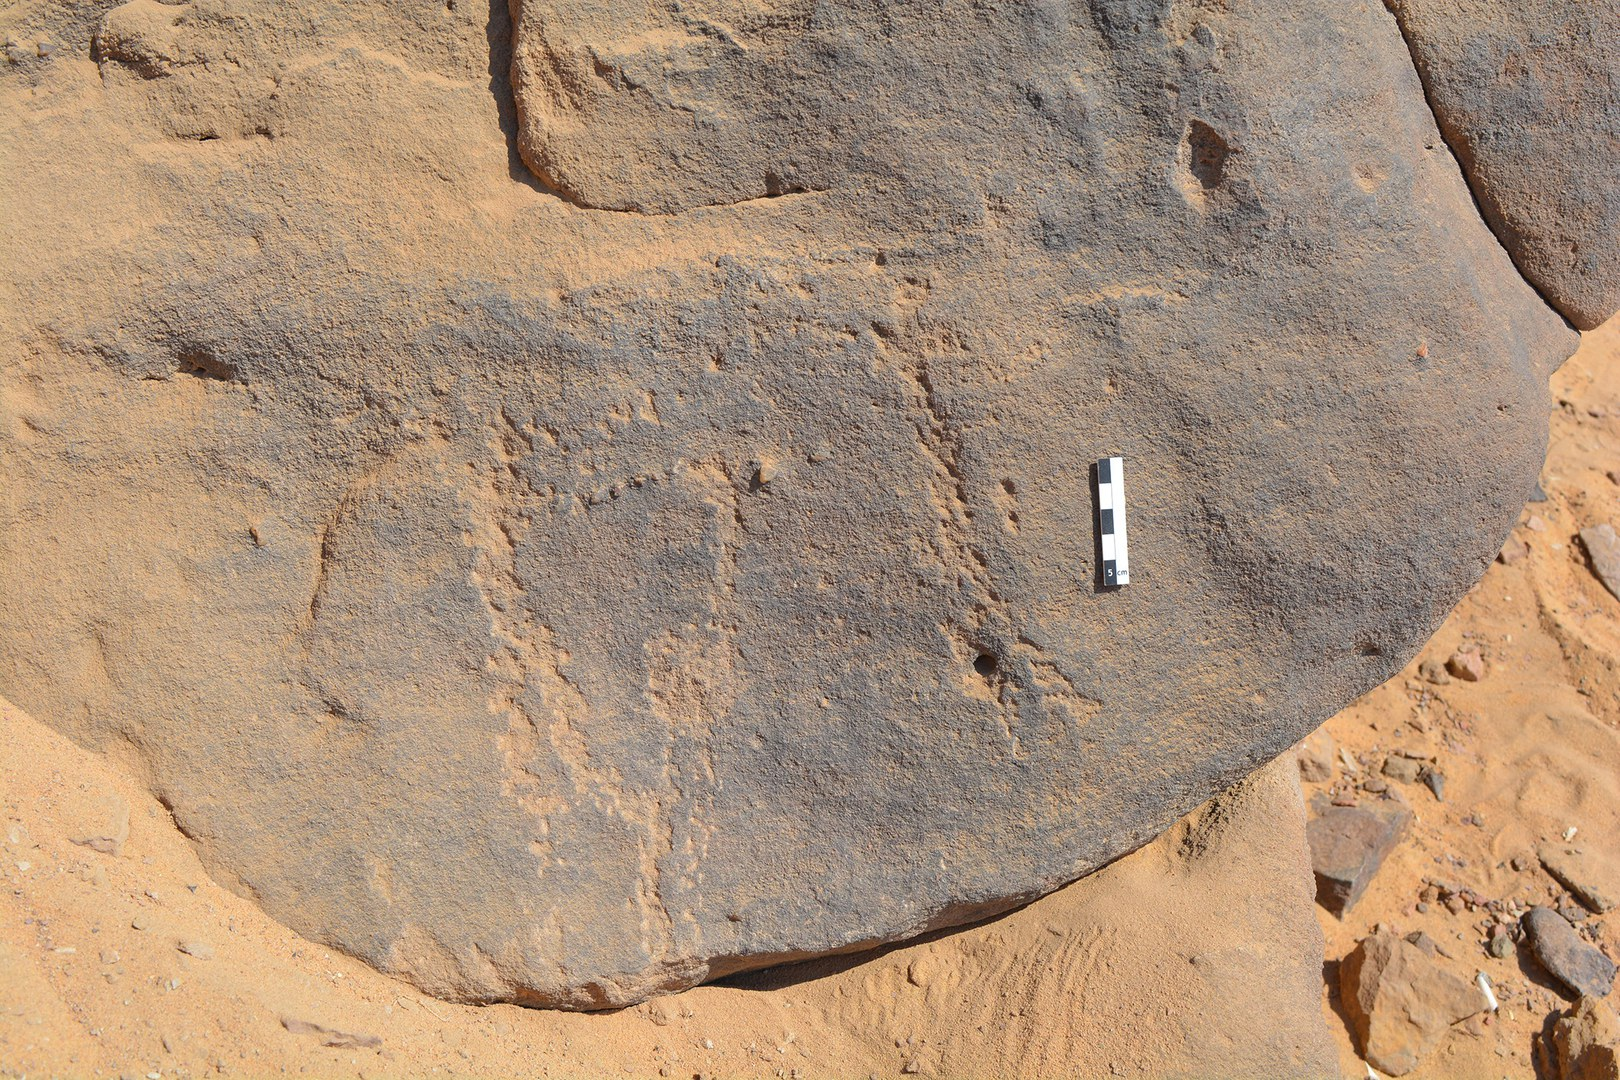 The around 6000-year-old rock engravings